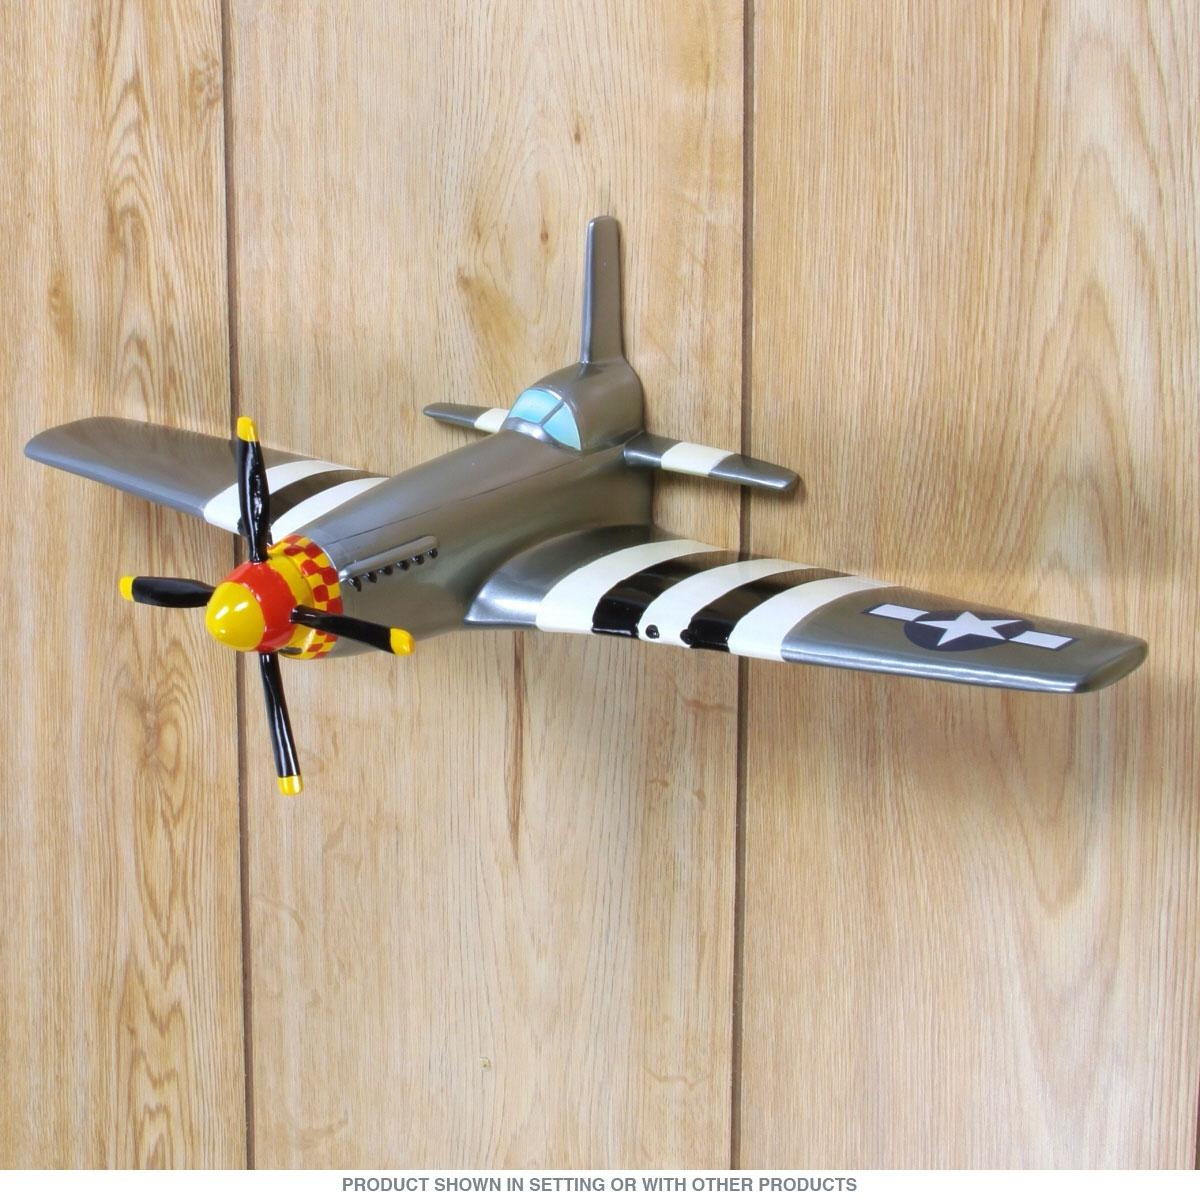 Amazing Vintage Metal Airplane Wall Decor D Airplane Wall Stickers Intended For Metal Airplane Wall Art (View 10 of 20)